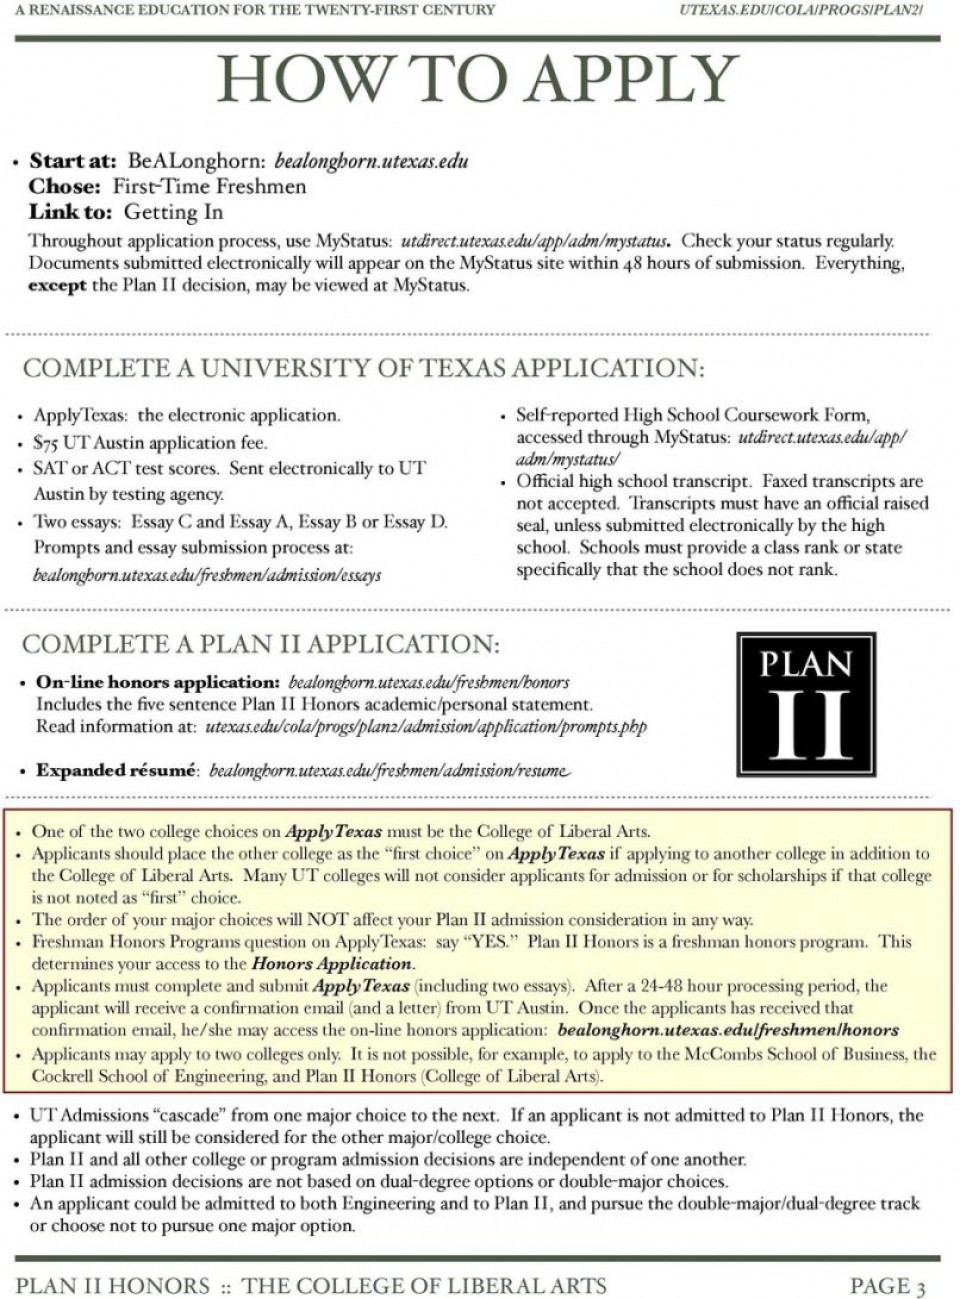 004 Essay Example Applytexas Prompts Poemdoc Or Apply Texas Topic Examples P Top Essays Word Limit 2016 2019 960